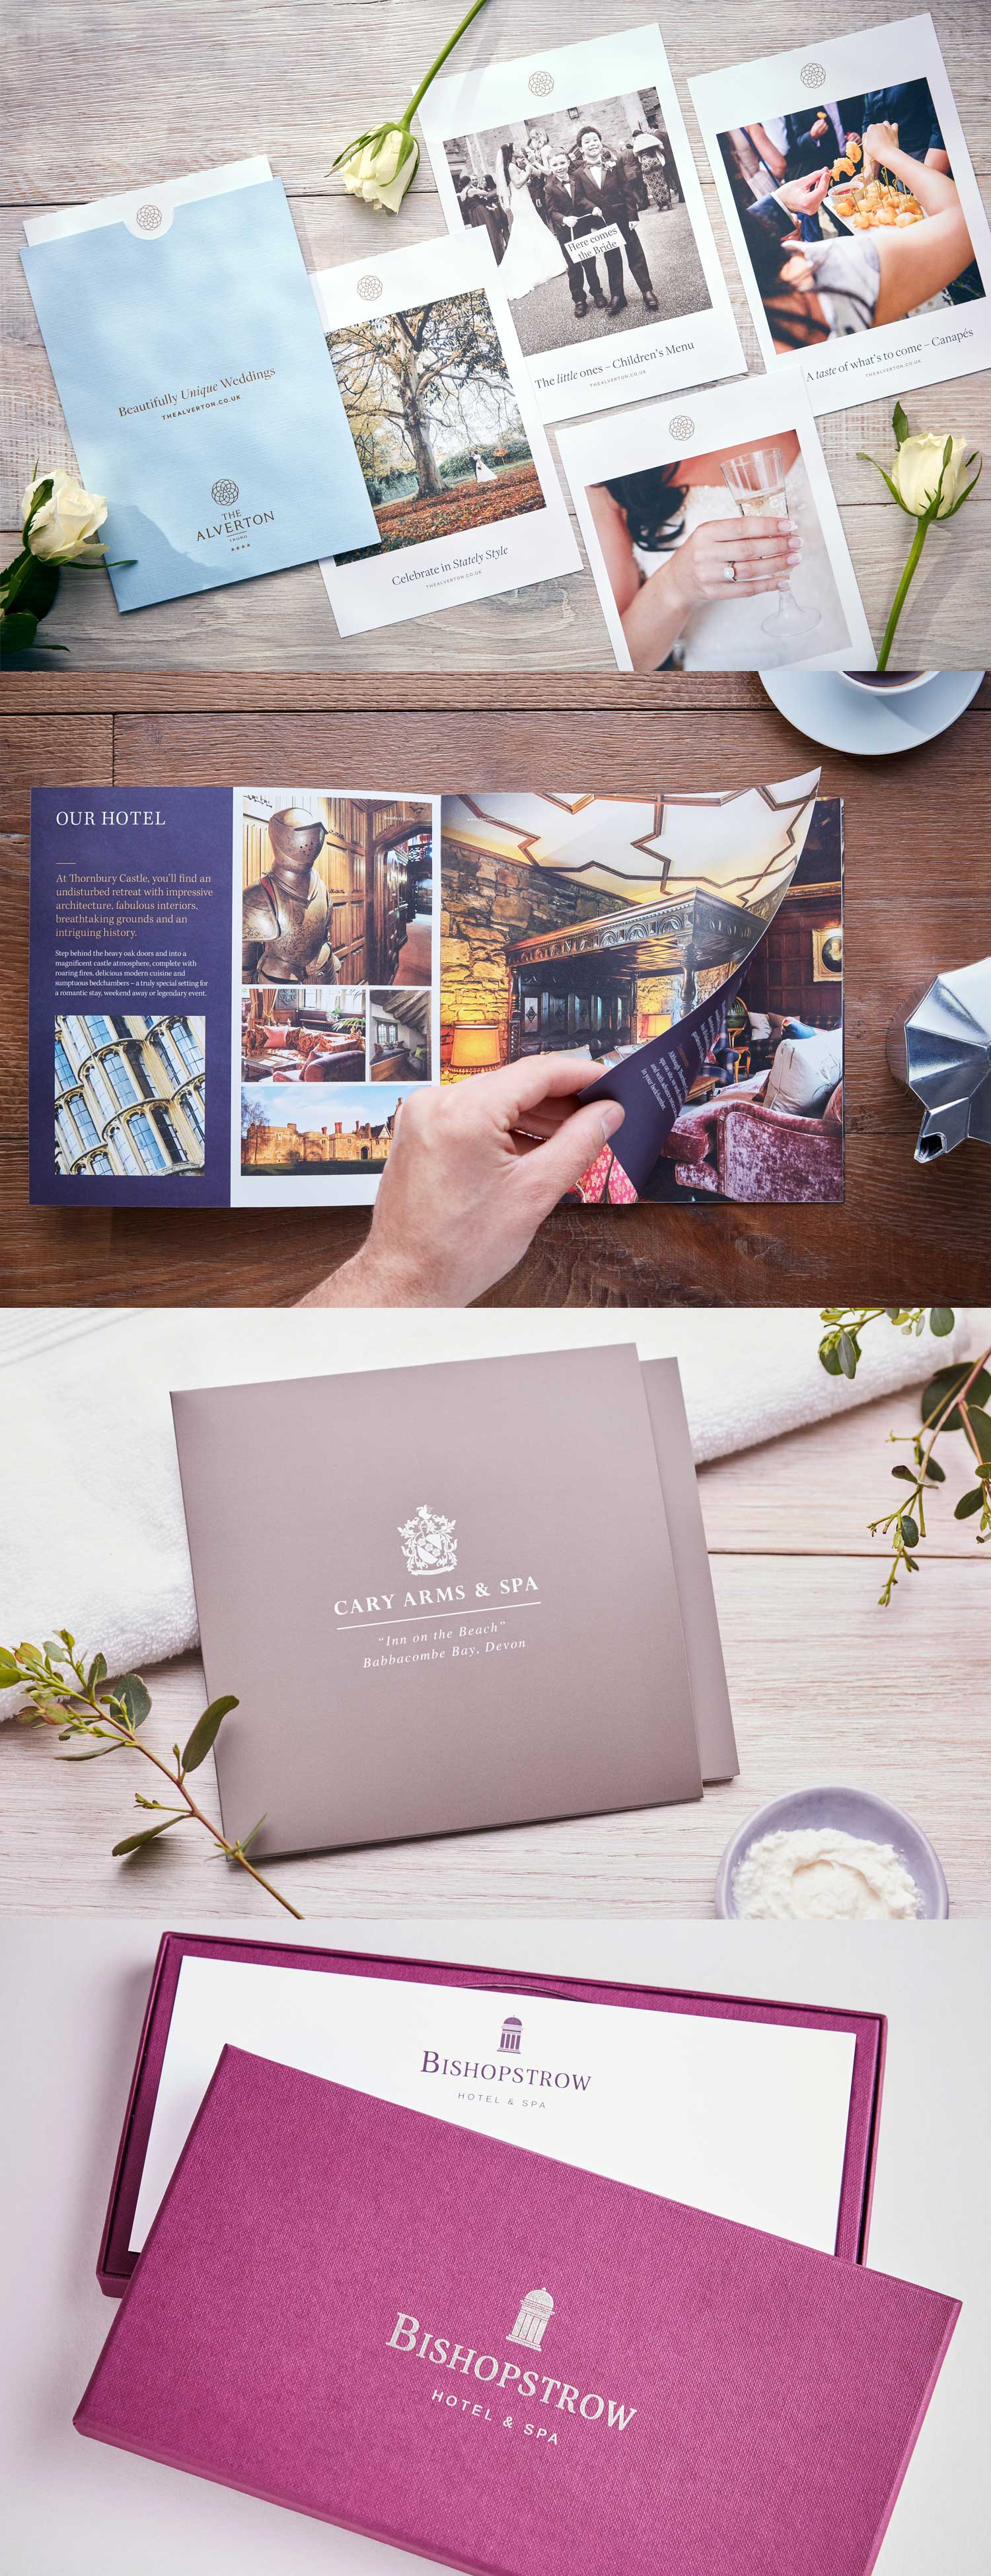 Quality Printing for Hotels